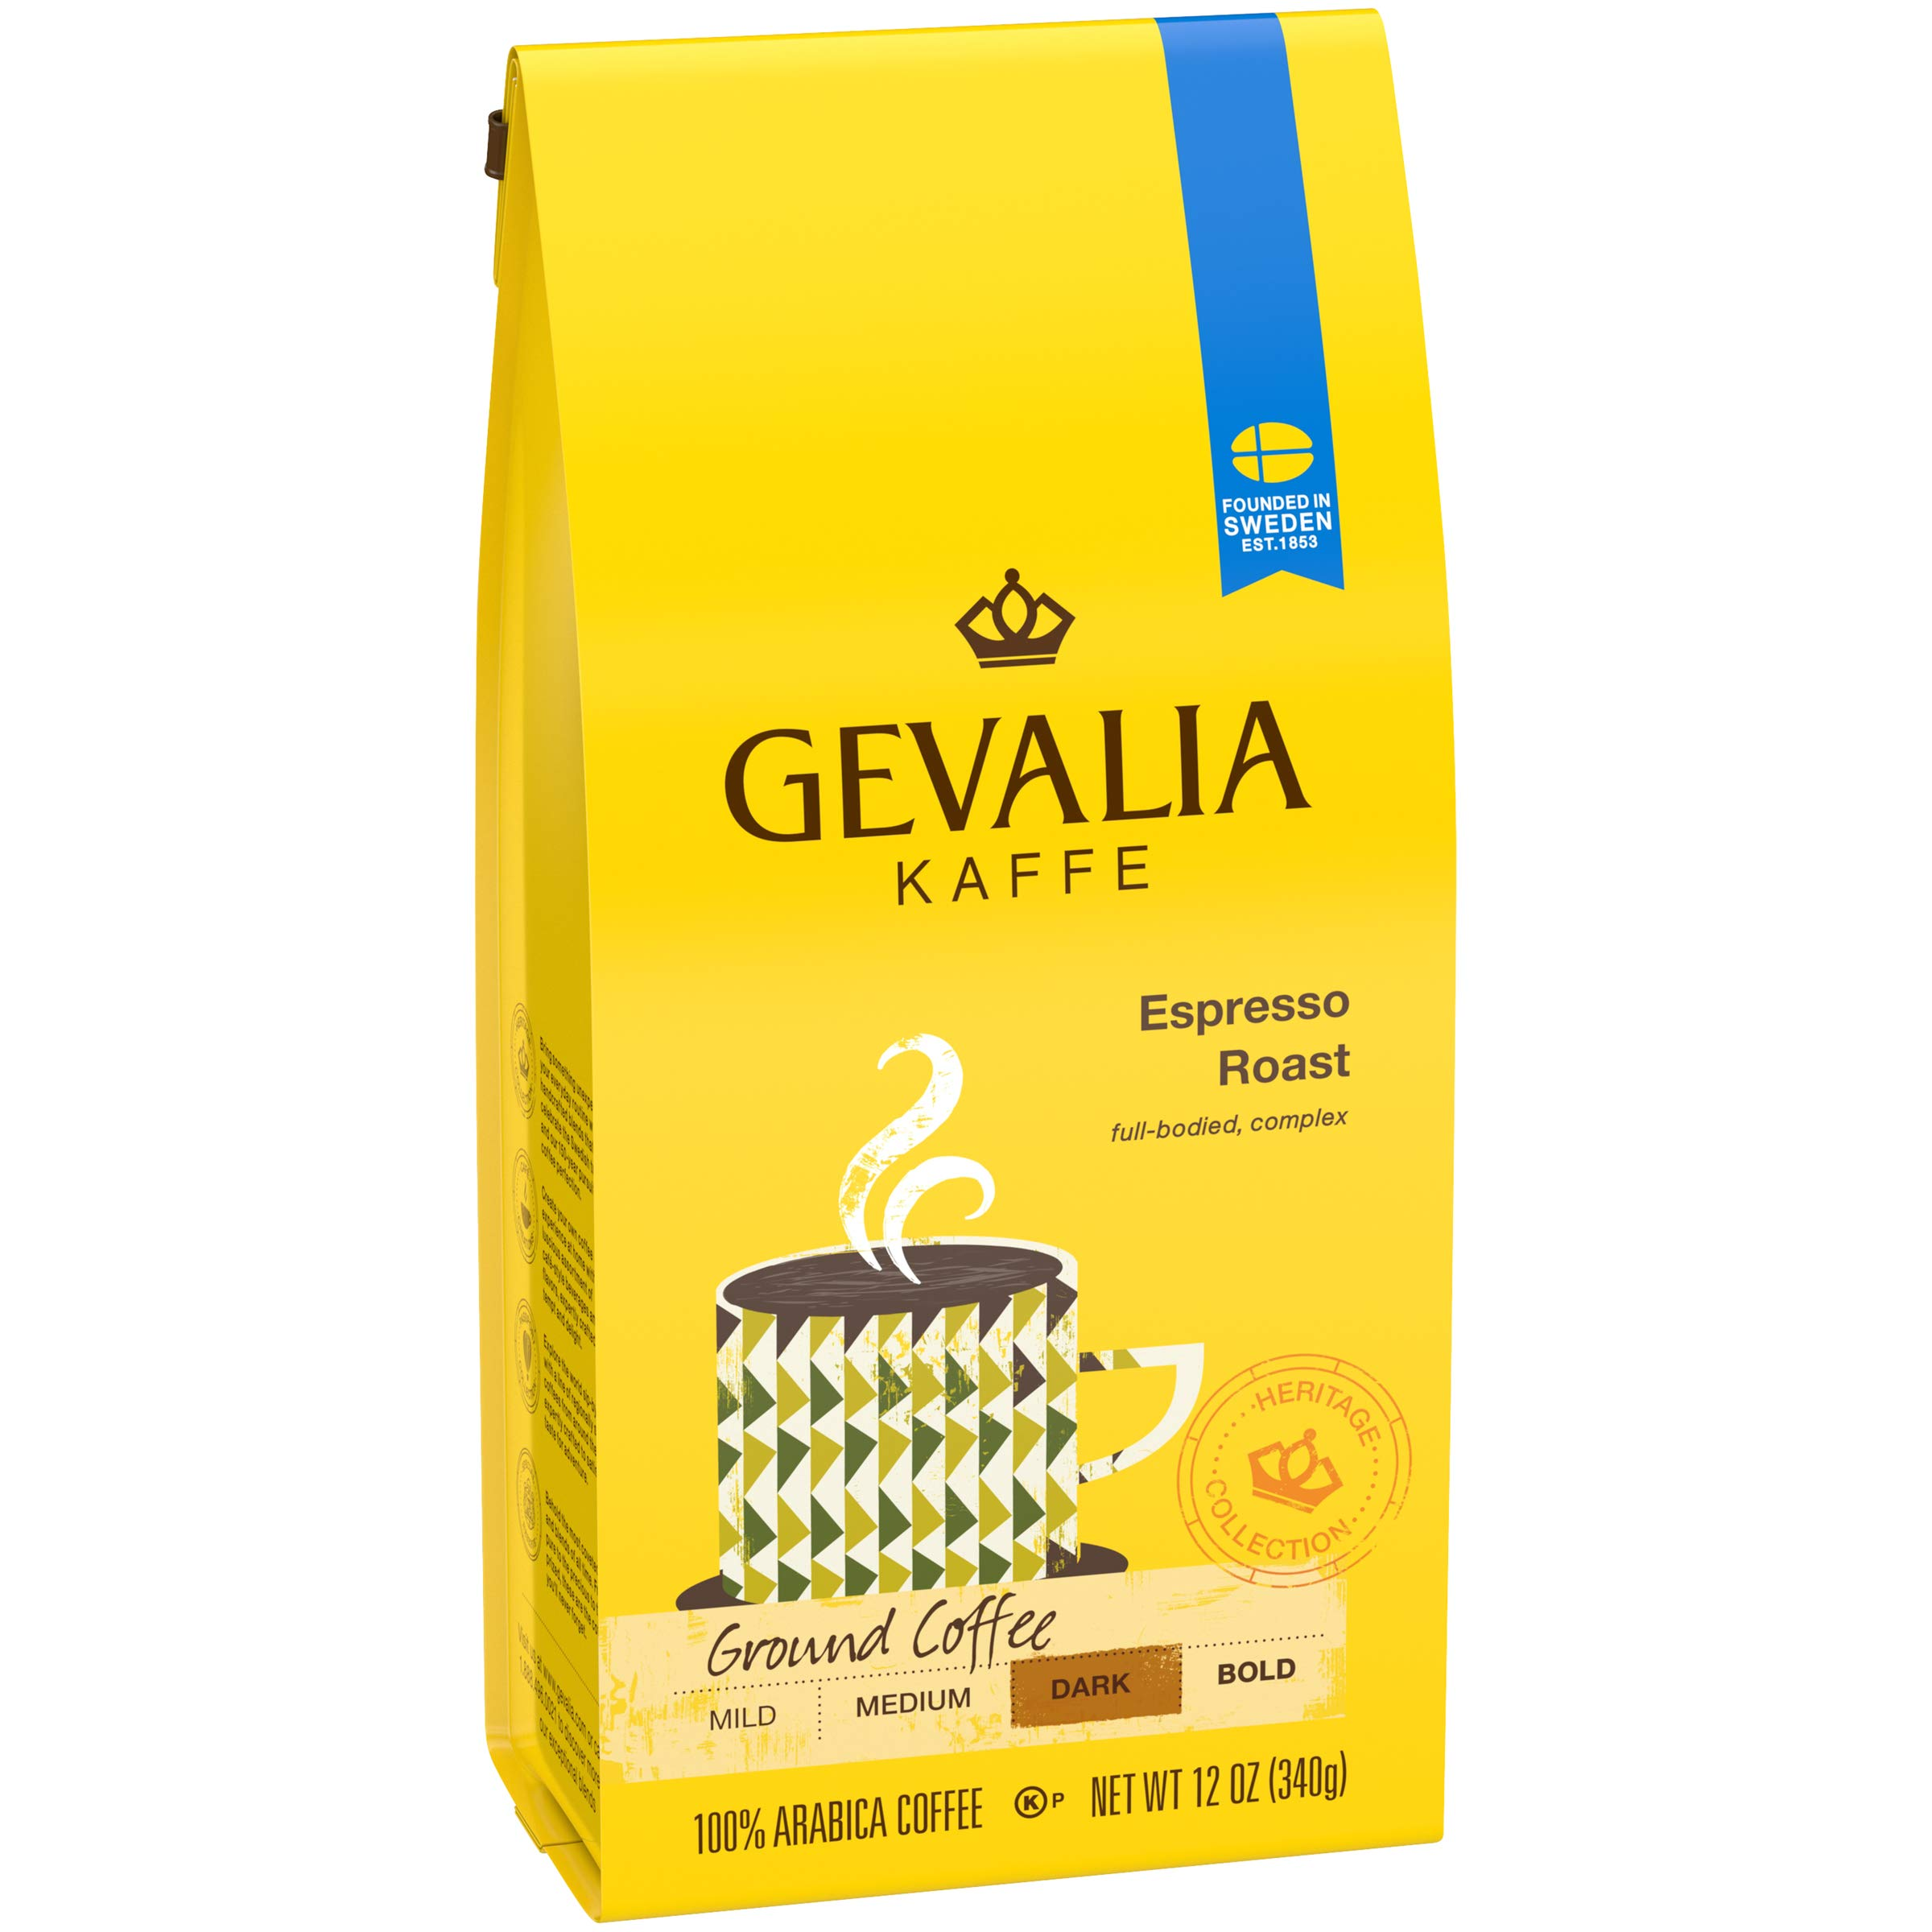 Gevalia Espresso Roast Ground Coffee (12 oz Bags, Pack of 6) by Gevalia